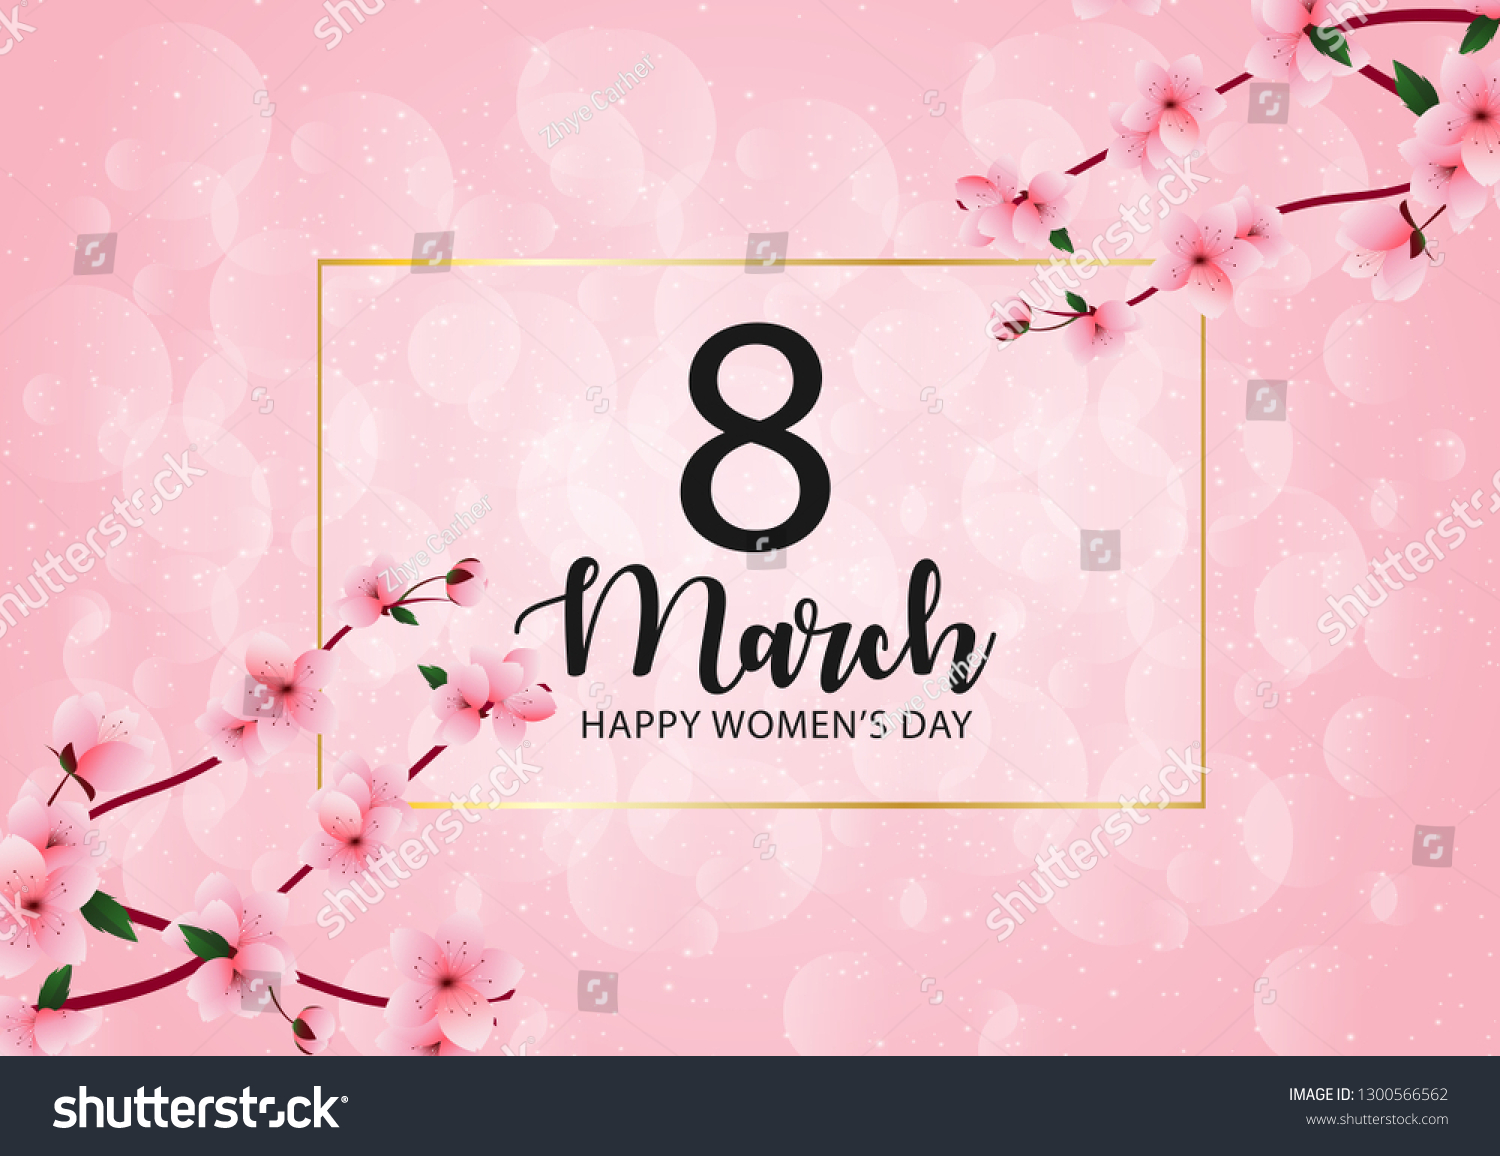 8 march international women's day background with cherry blossoms